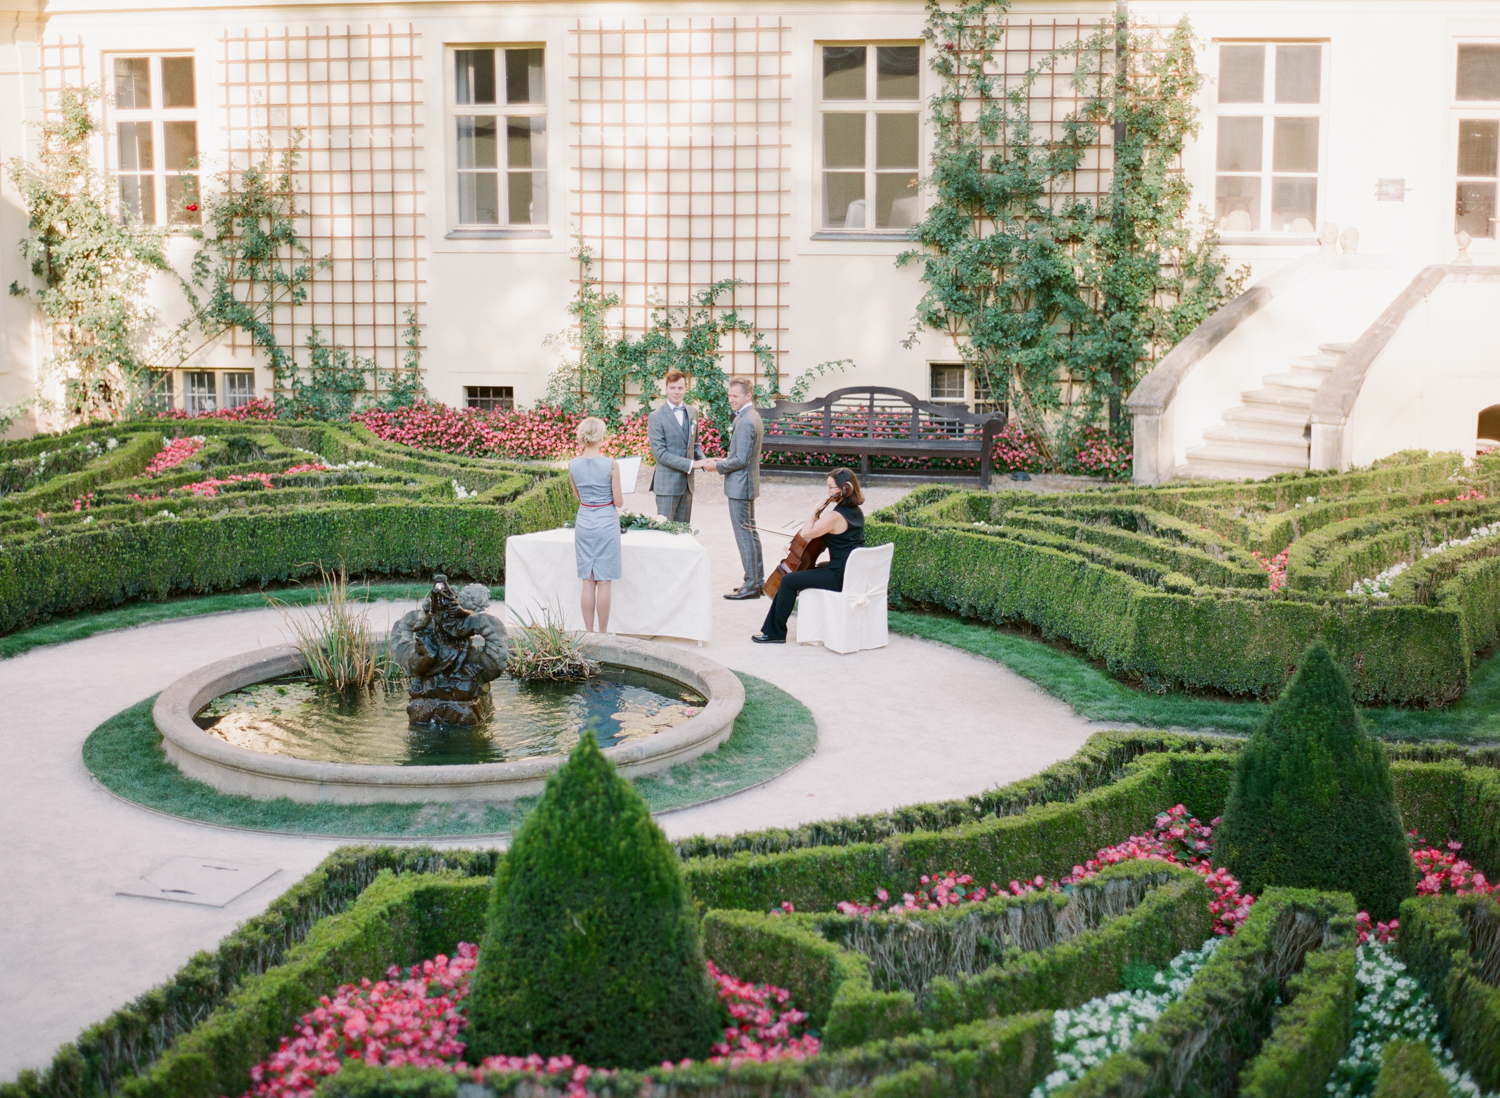 prague_wedding_vrtba_gardens_elopement_film_wedding_photographer_nikol_bodnarova_20.JPG